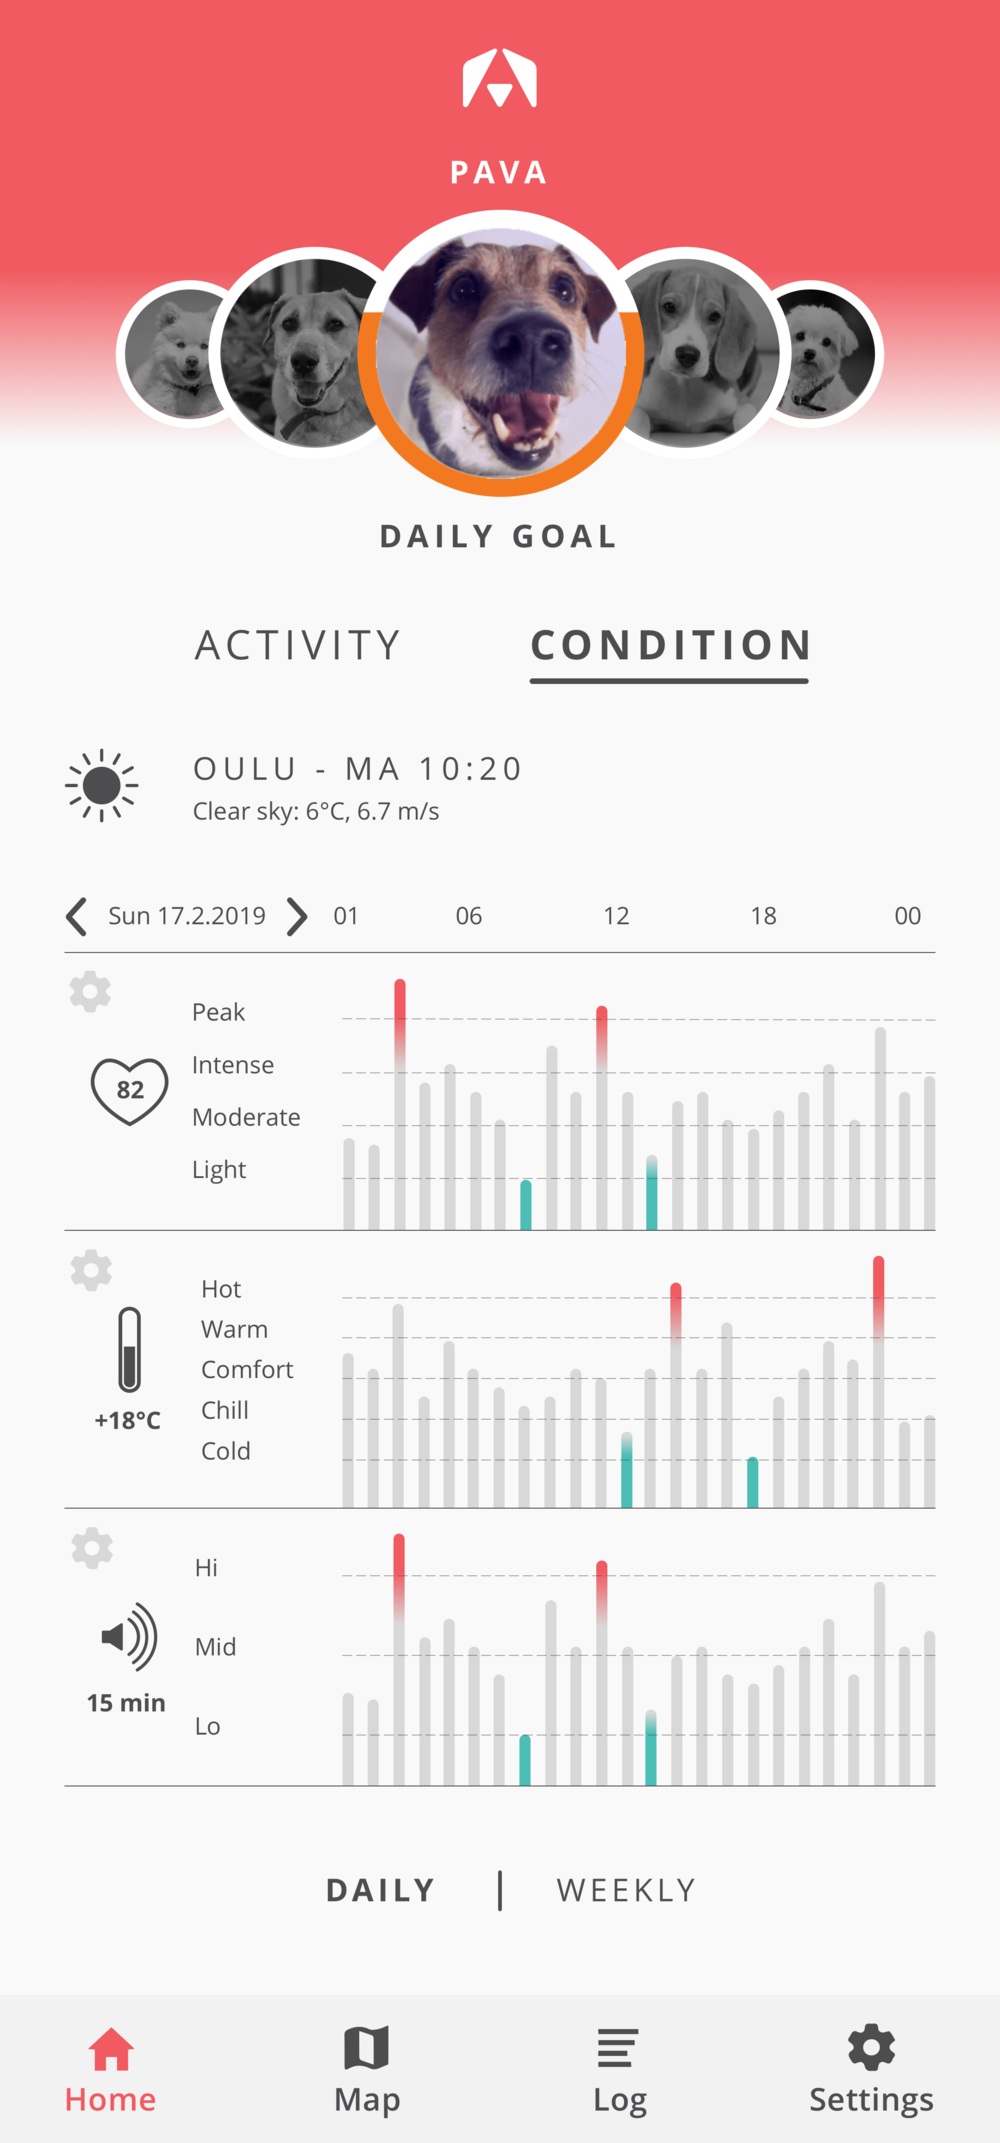 Anaxeos App - HOME - Daily.png